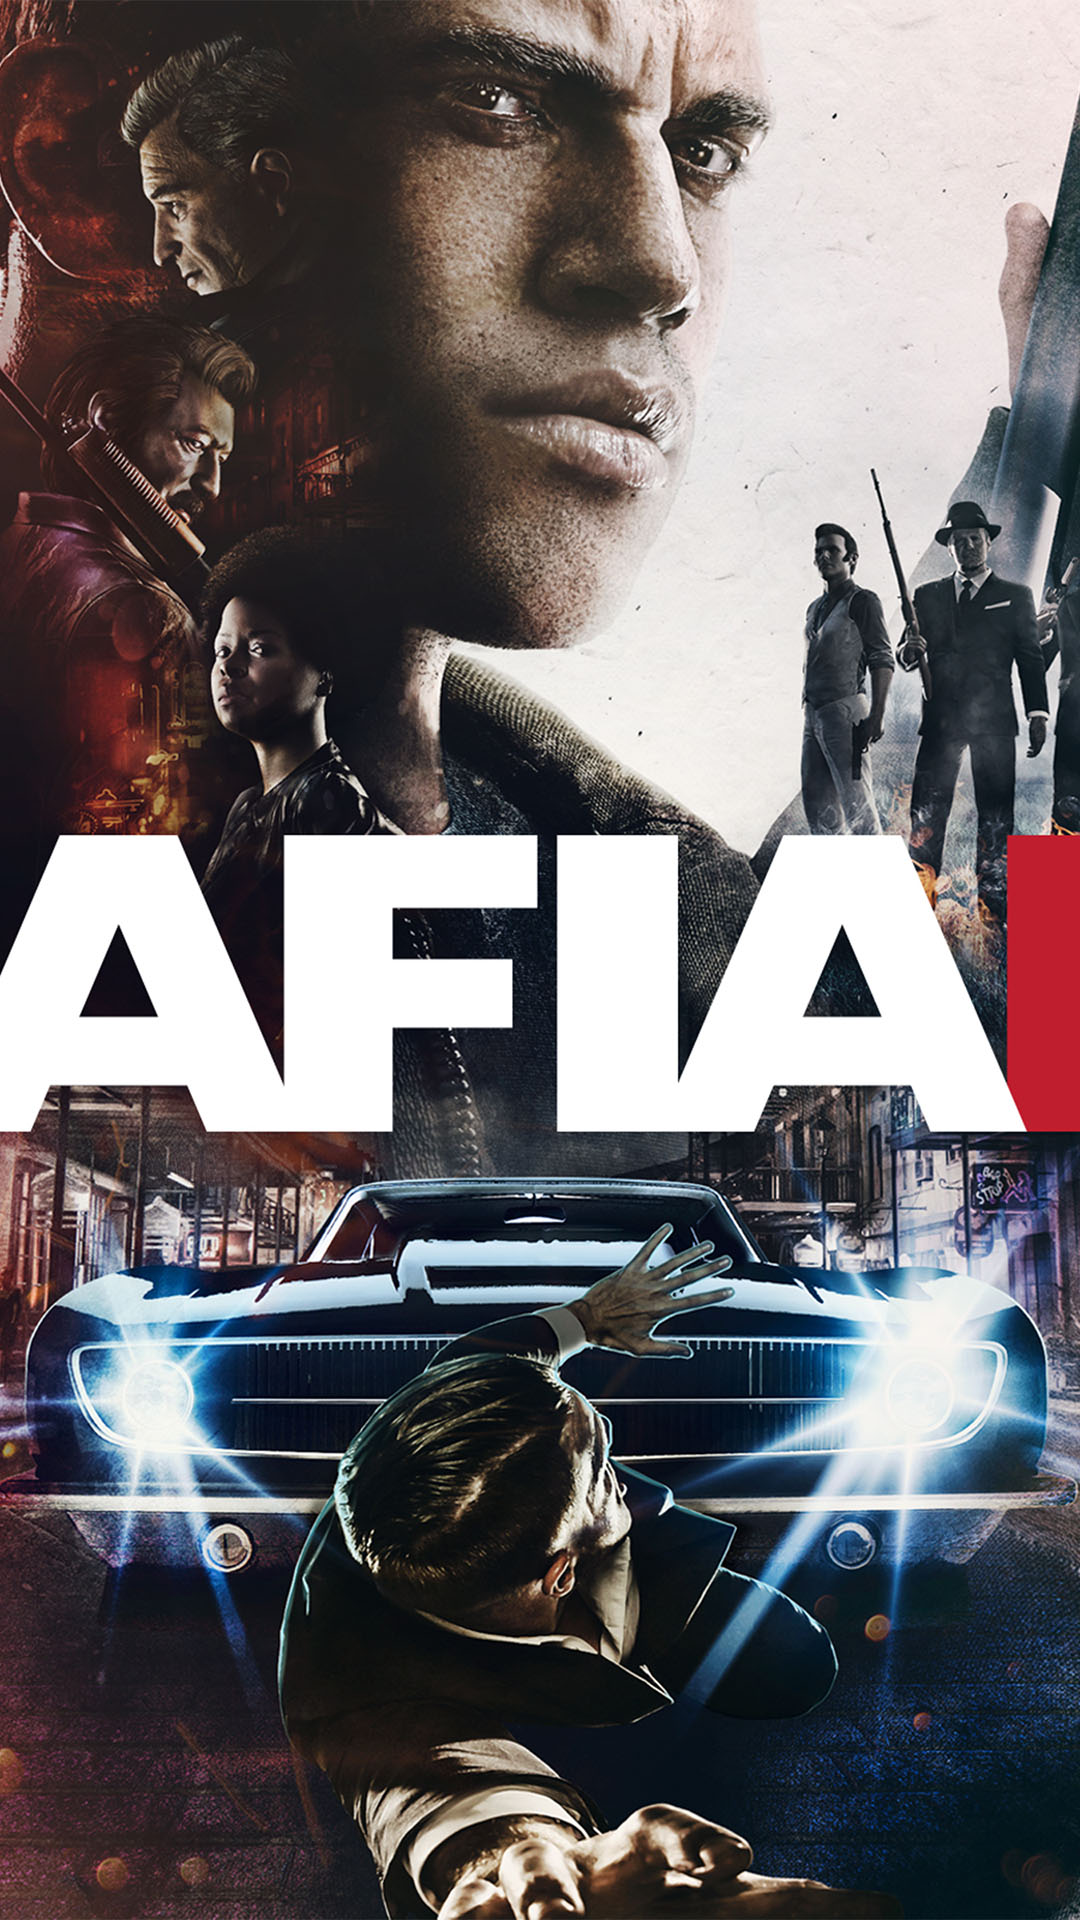 Mafia 3 Mafia III Game Gun Car Wallpaper | WallpapersByte